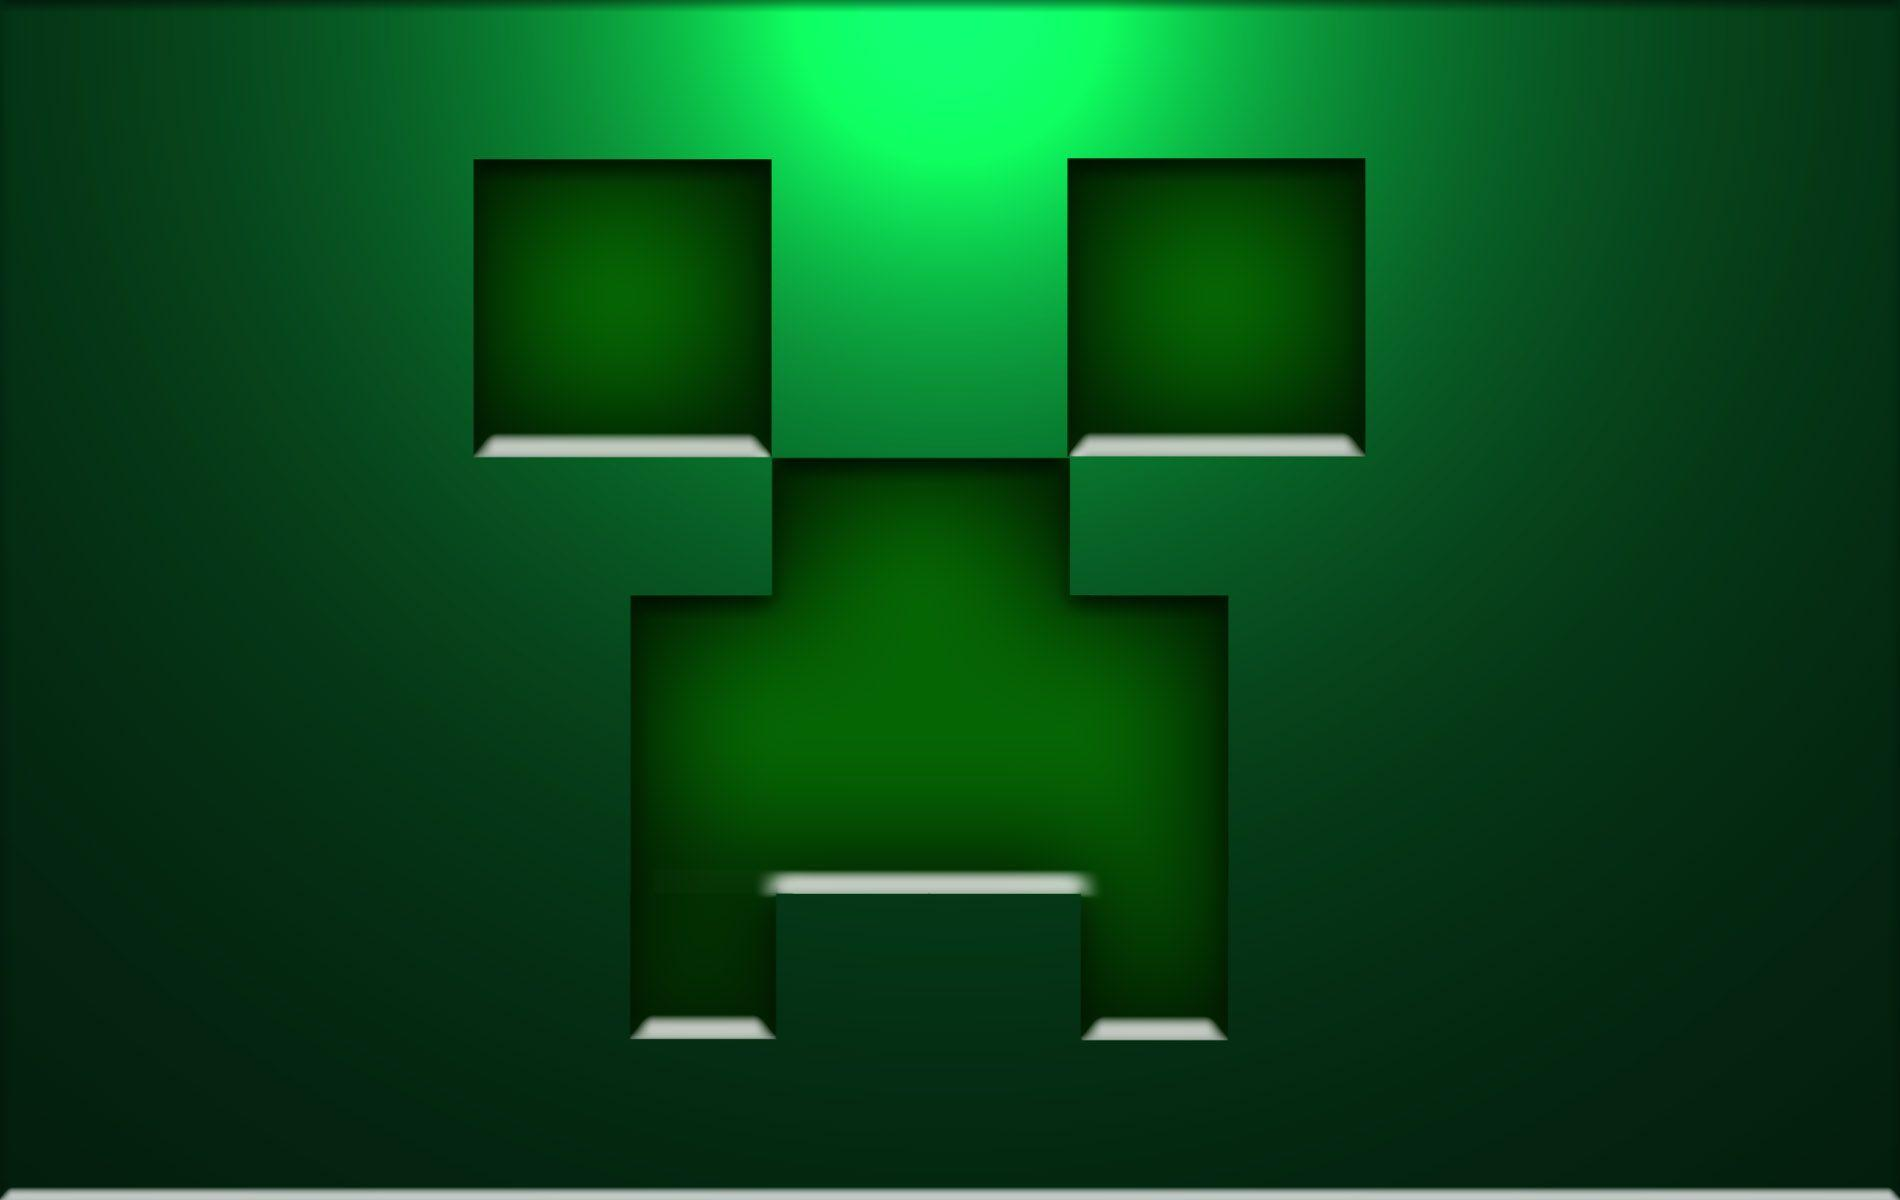 Hd Wallpapers Minecraft Creeper Images 6 HD Wallpapers | Hdimges.